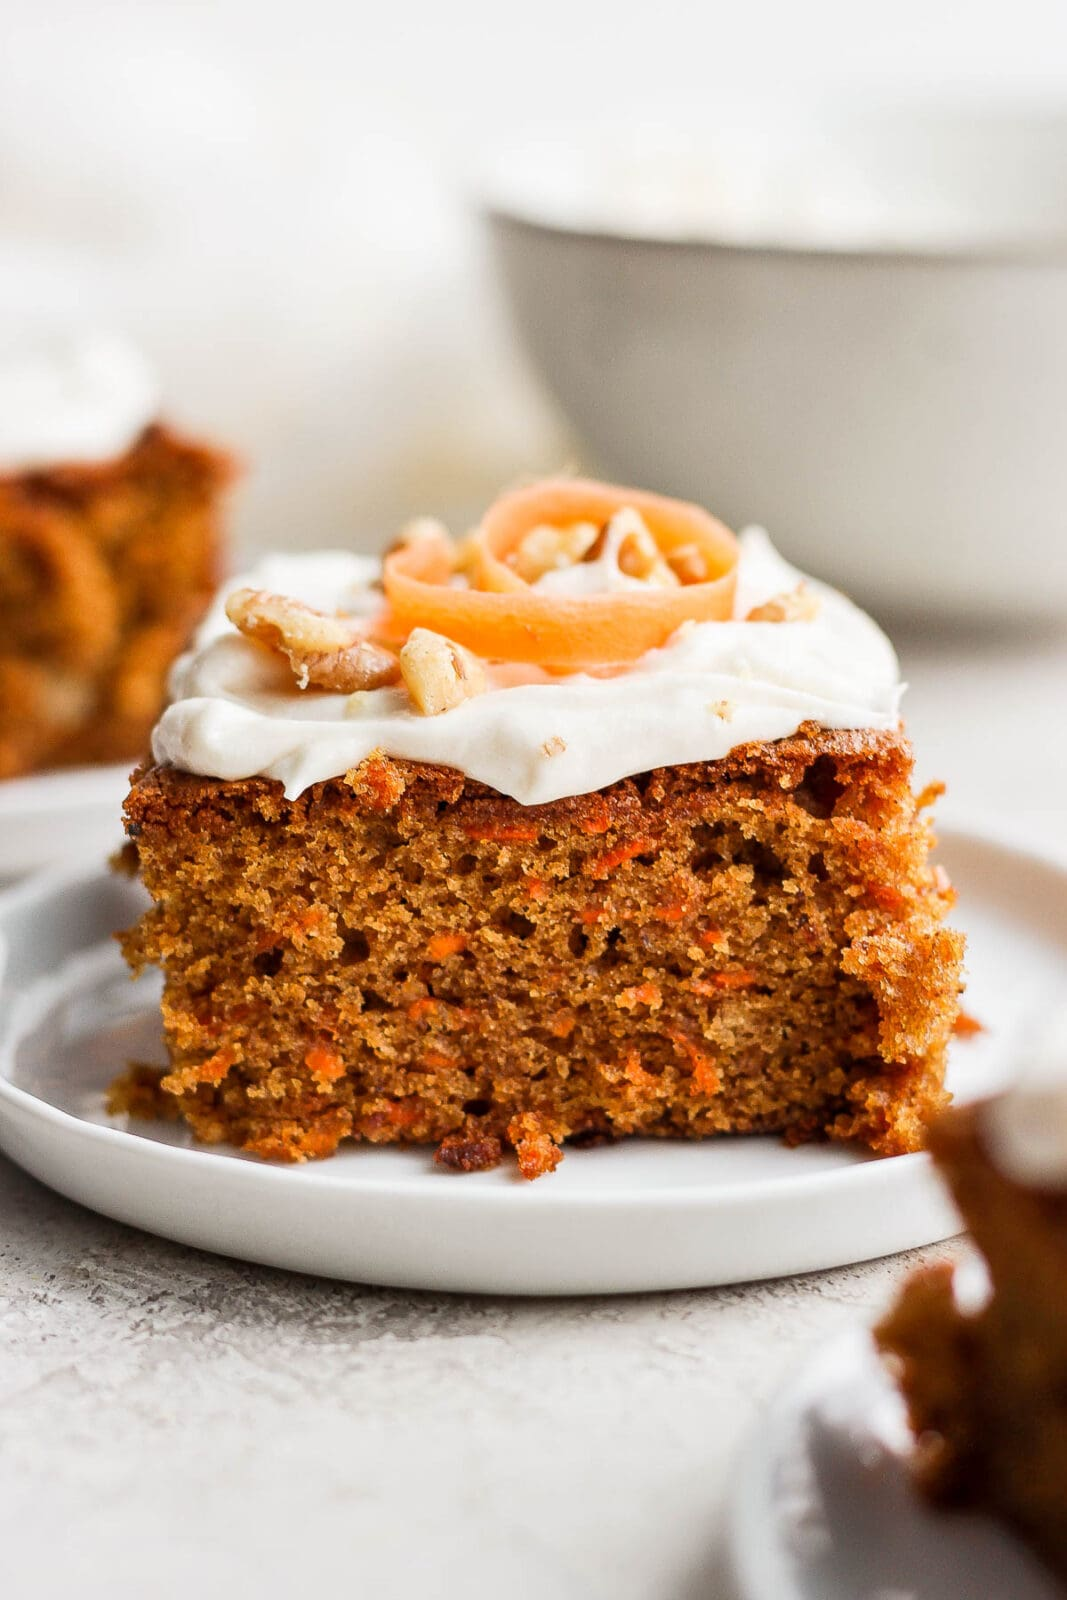 Slice of gluten free carrot cake on a plate with cream cheese frosting.